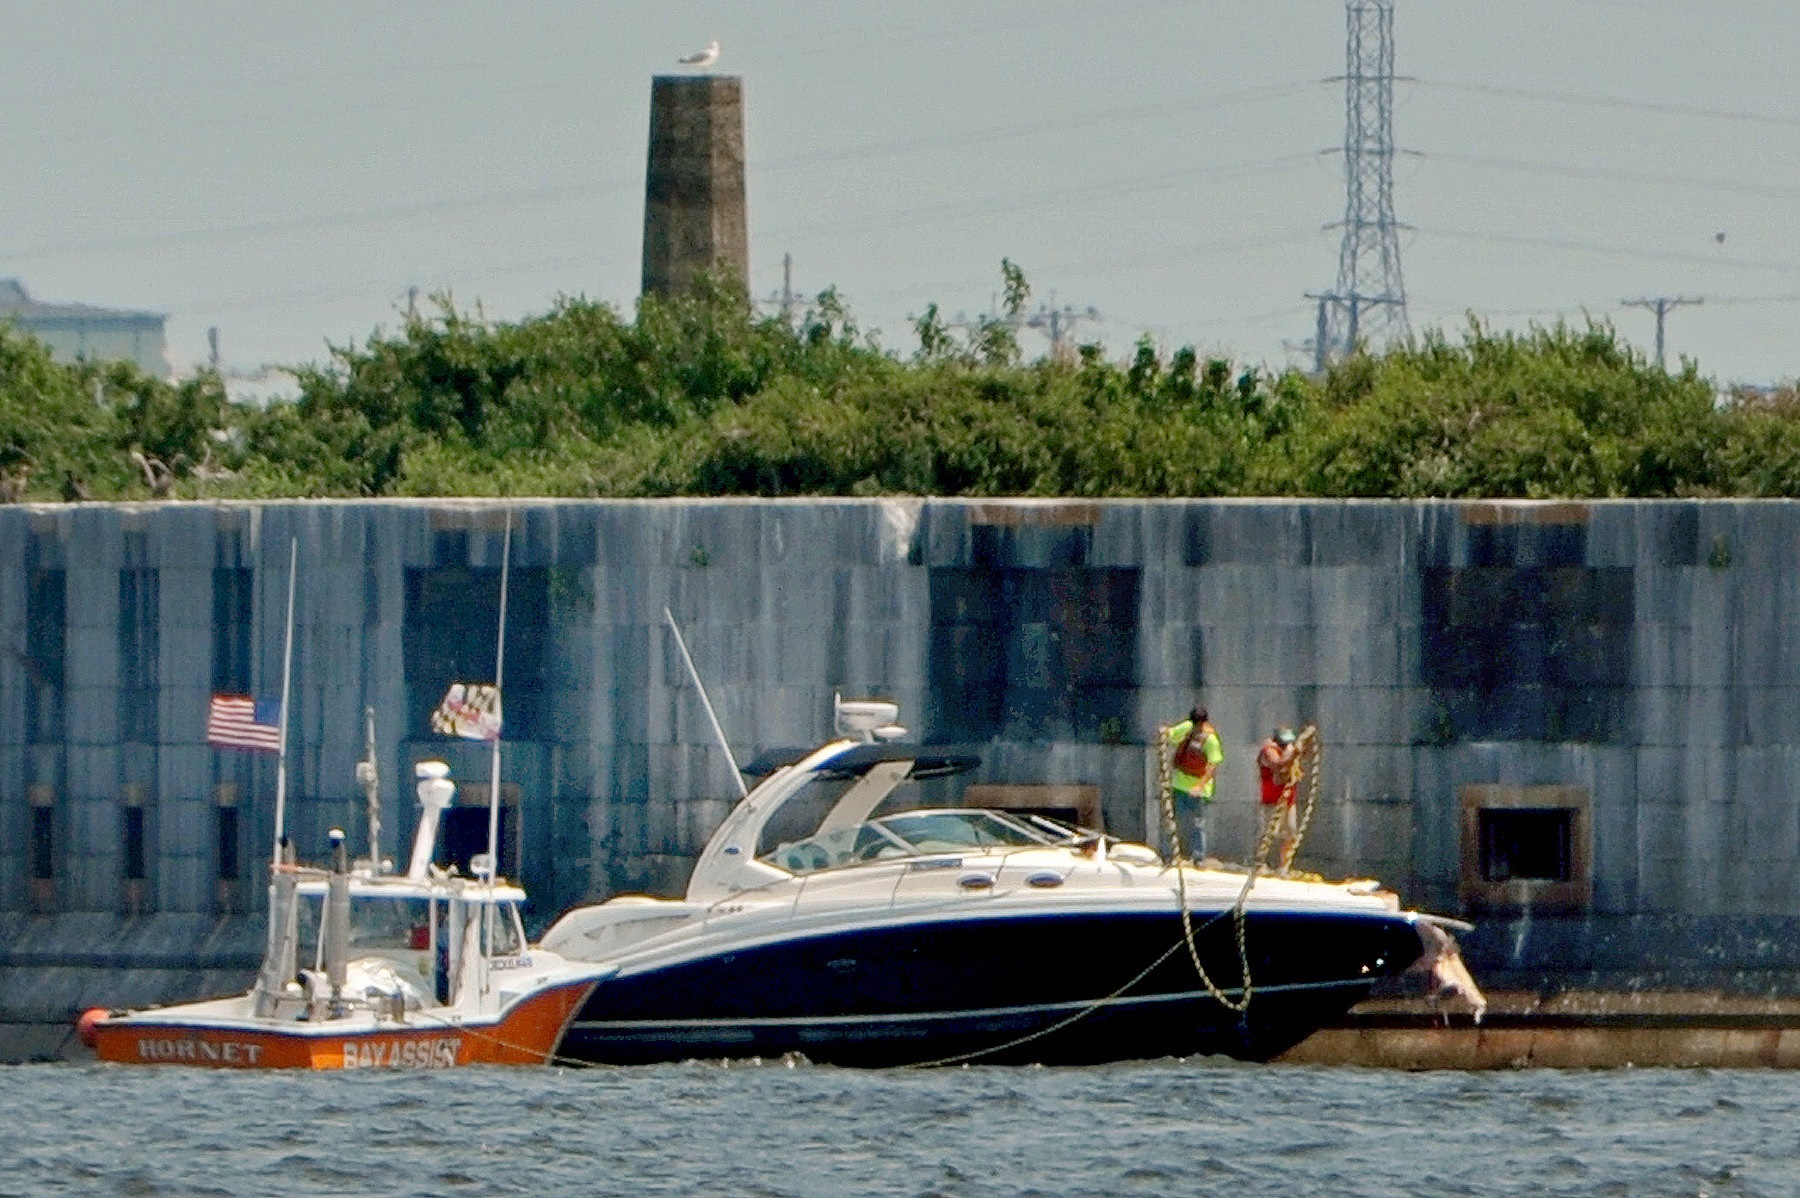 Tim Wilson was operating this 36' speed boat when it hit a concrete bridge abutment for the Key Bridge and killed two passengers July 2015 photo courtesy of Balt Sun